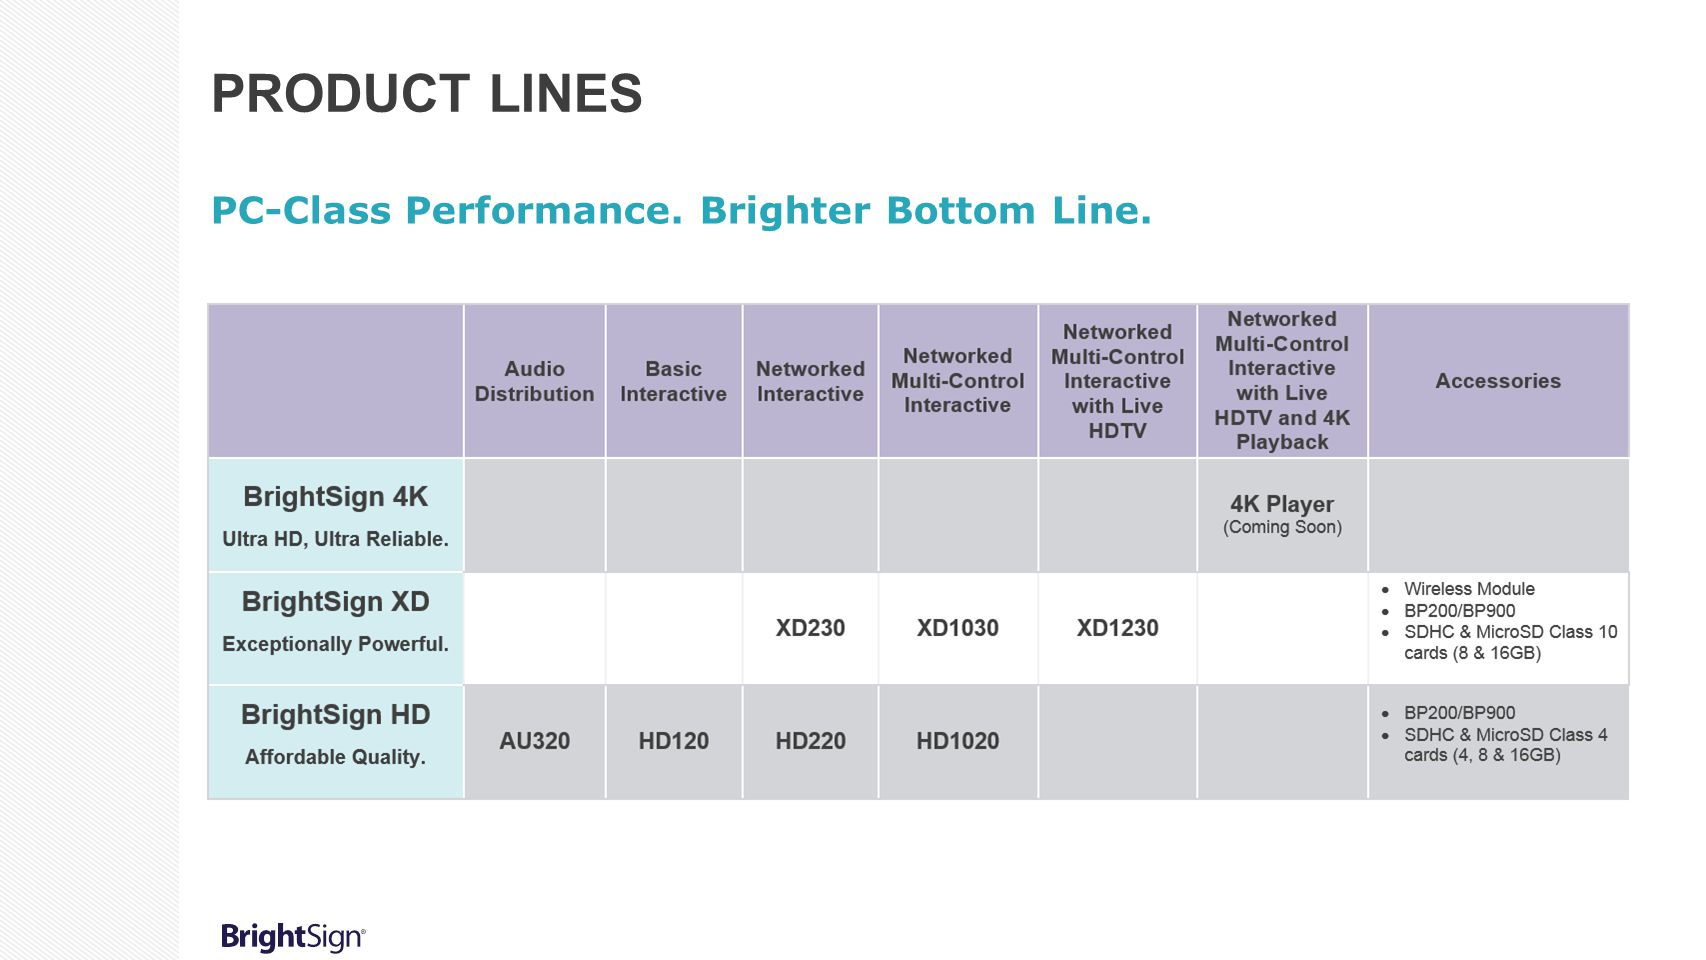 Product lines PC-Class Performance. Brighter Bottom Line.